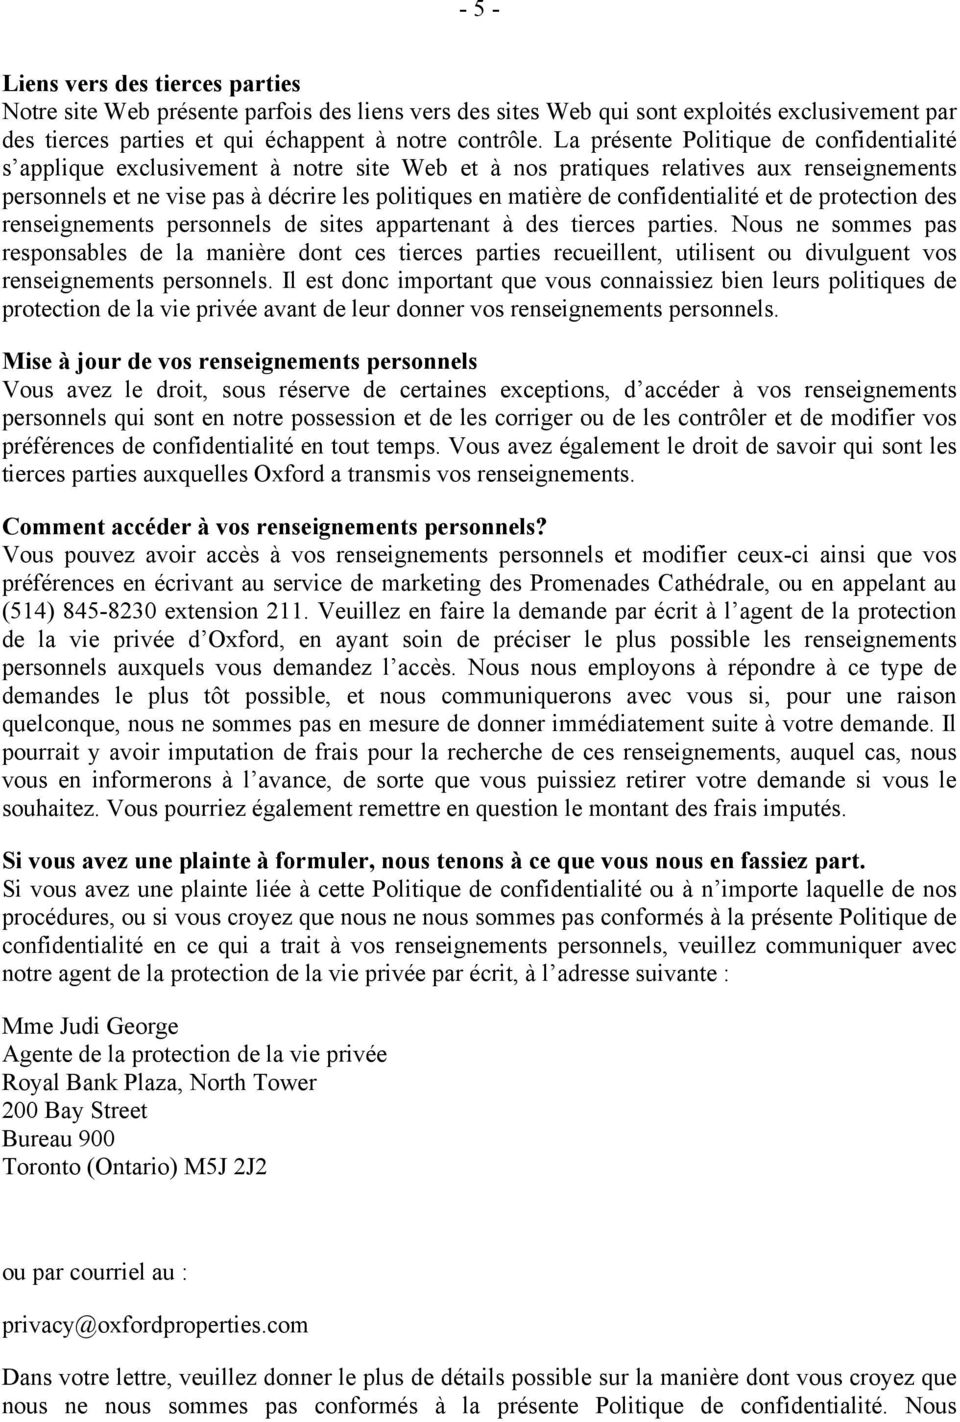 confidentialité et de protection des renseignements personnels de sites appartenant à des tierces parties.